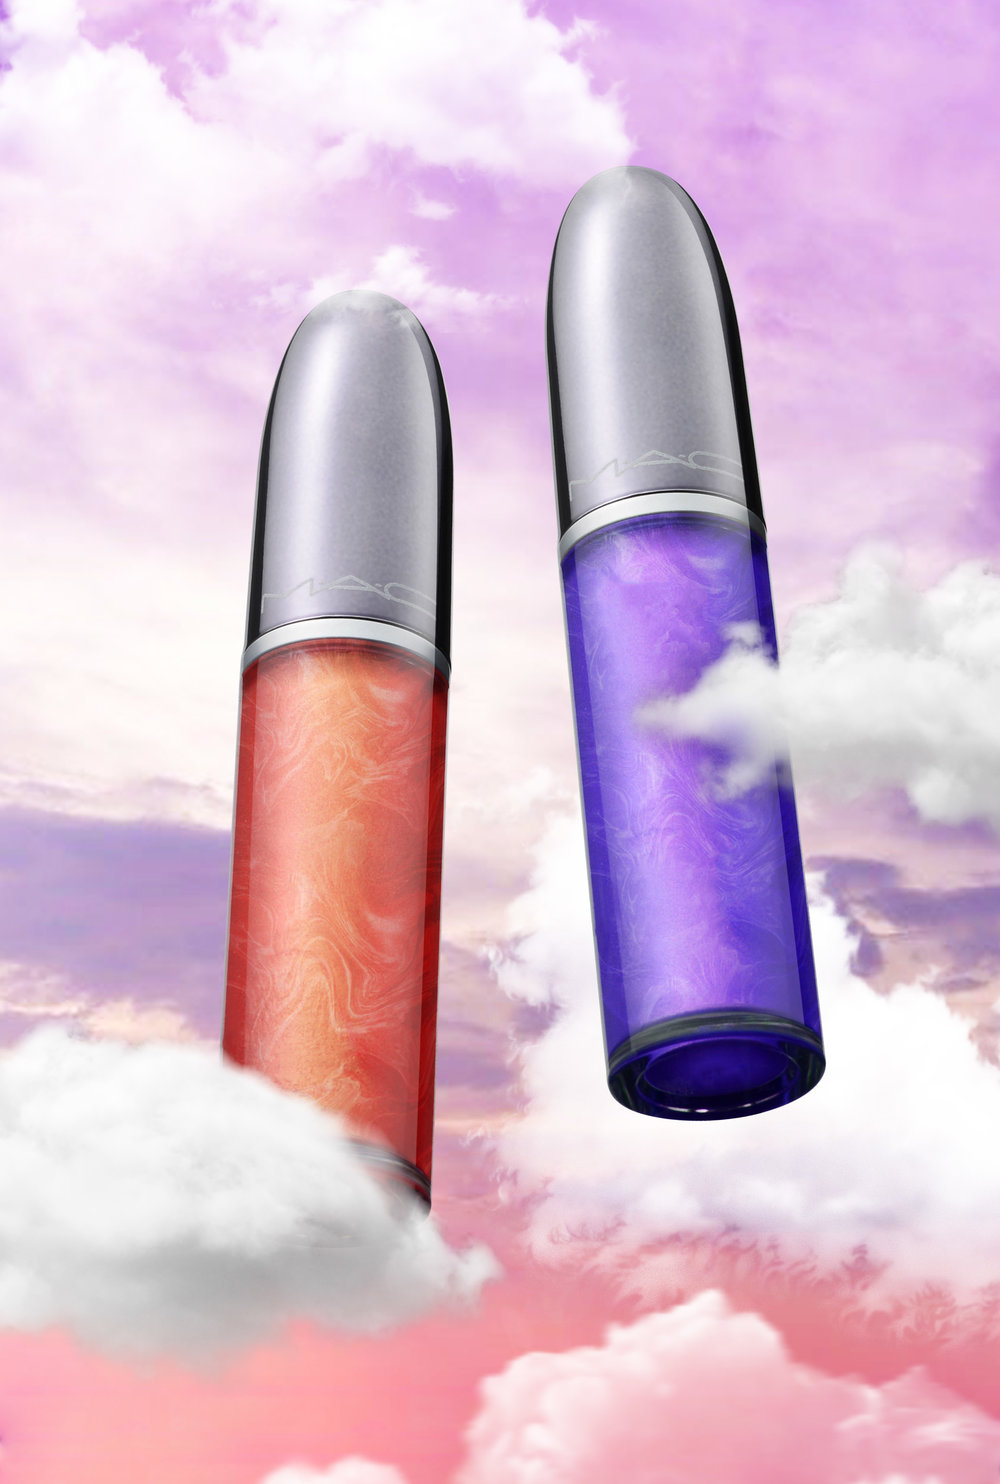 MAC-Retro-Lipsticks-Metallic-clouds.jpg